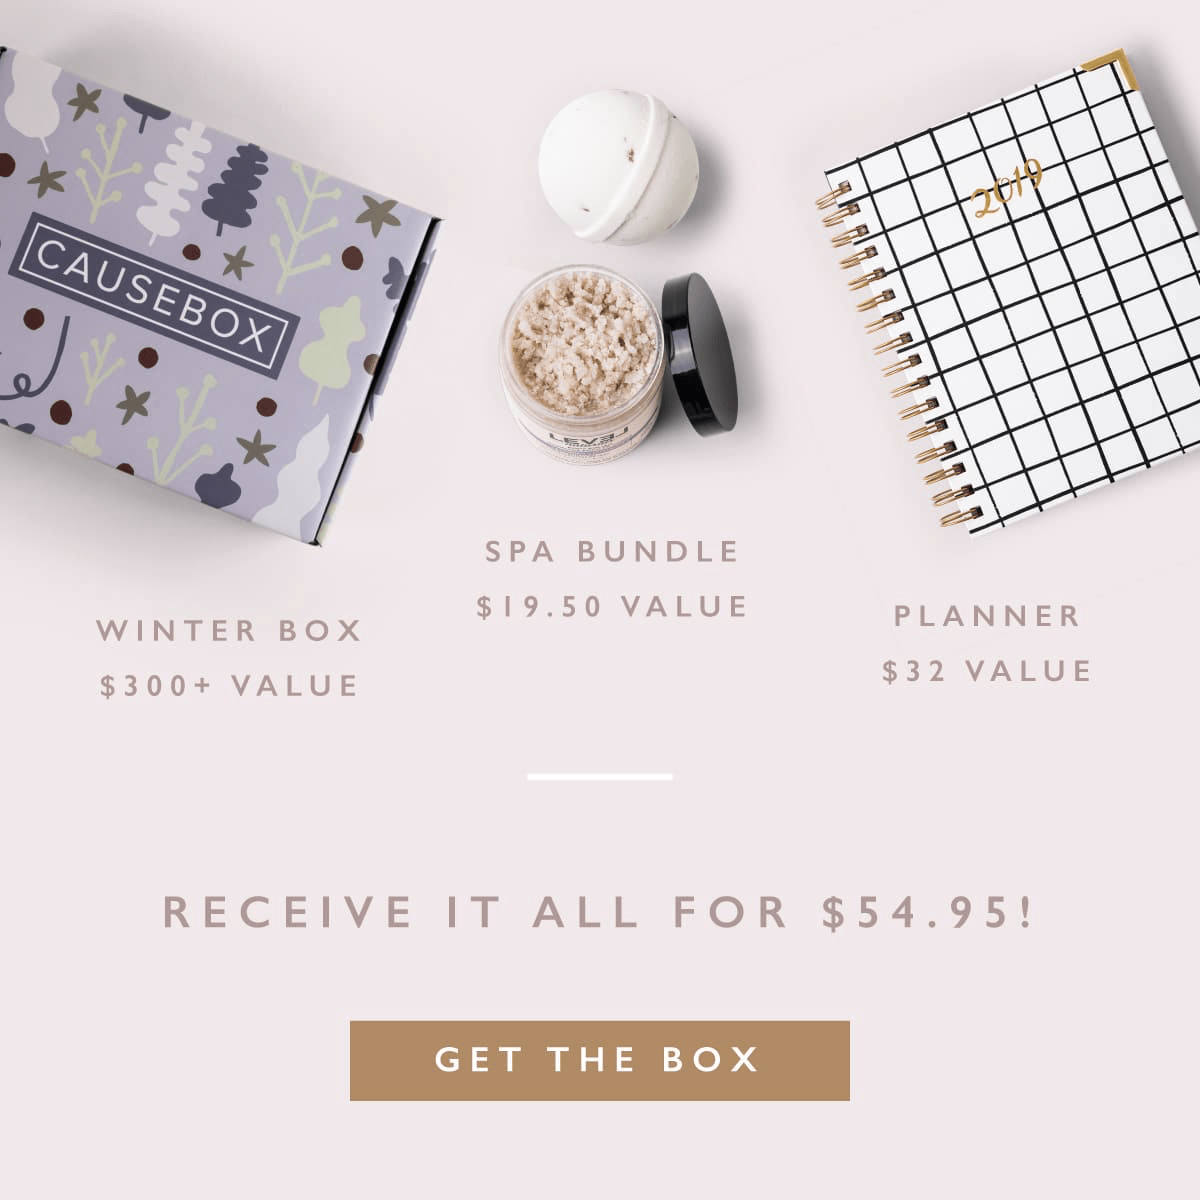 CAUSEBOX Flash Sale: Get FREE Spa Bundle & Planner With Your Winter 2019 Welcome Box! TODAY ONLY!